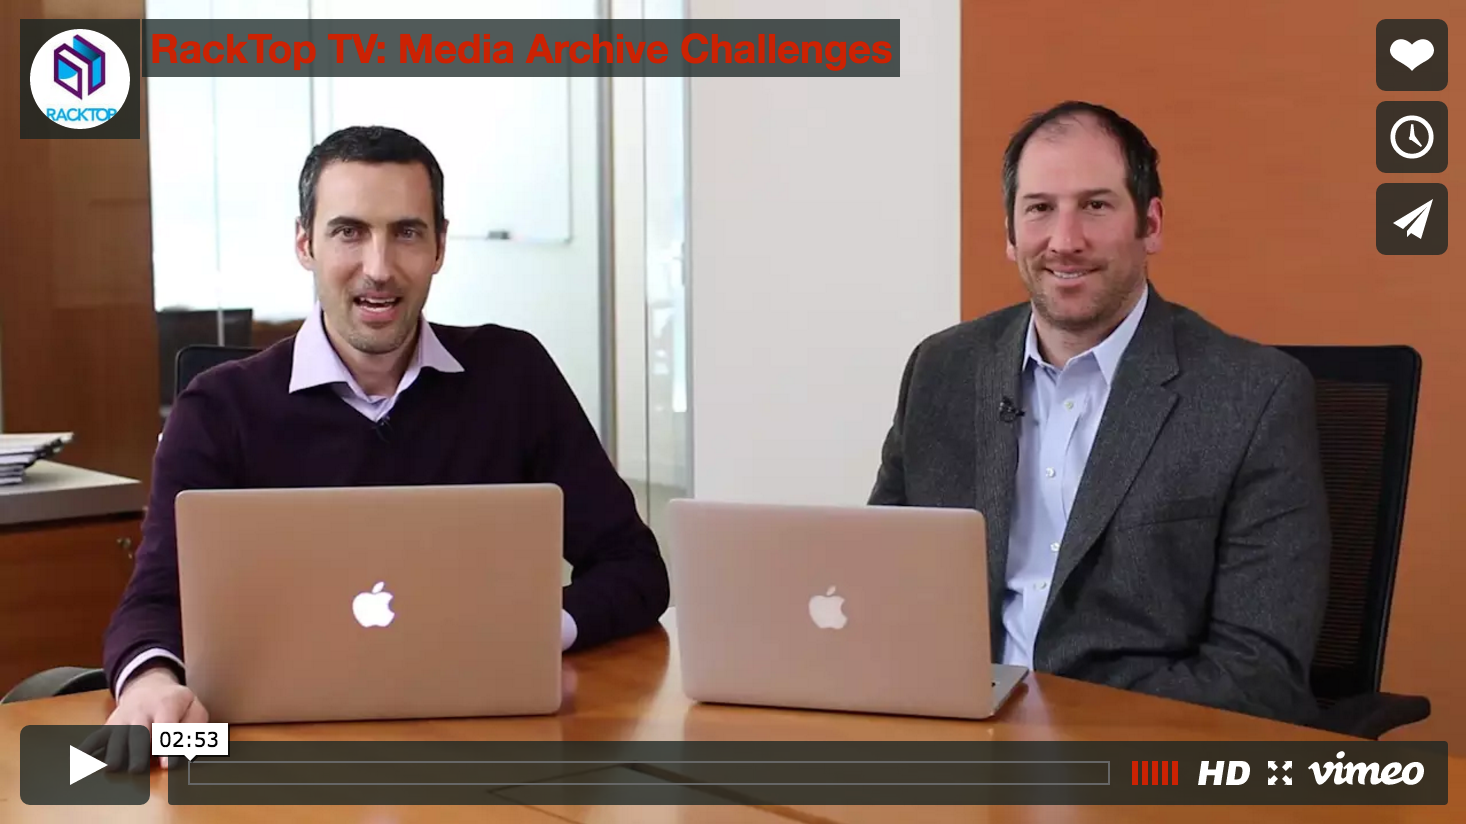 RackTop TV: Media Archive Challenges